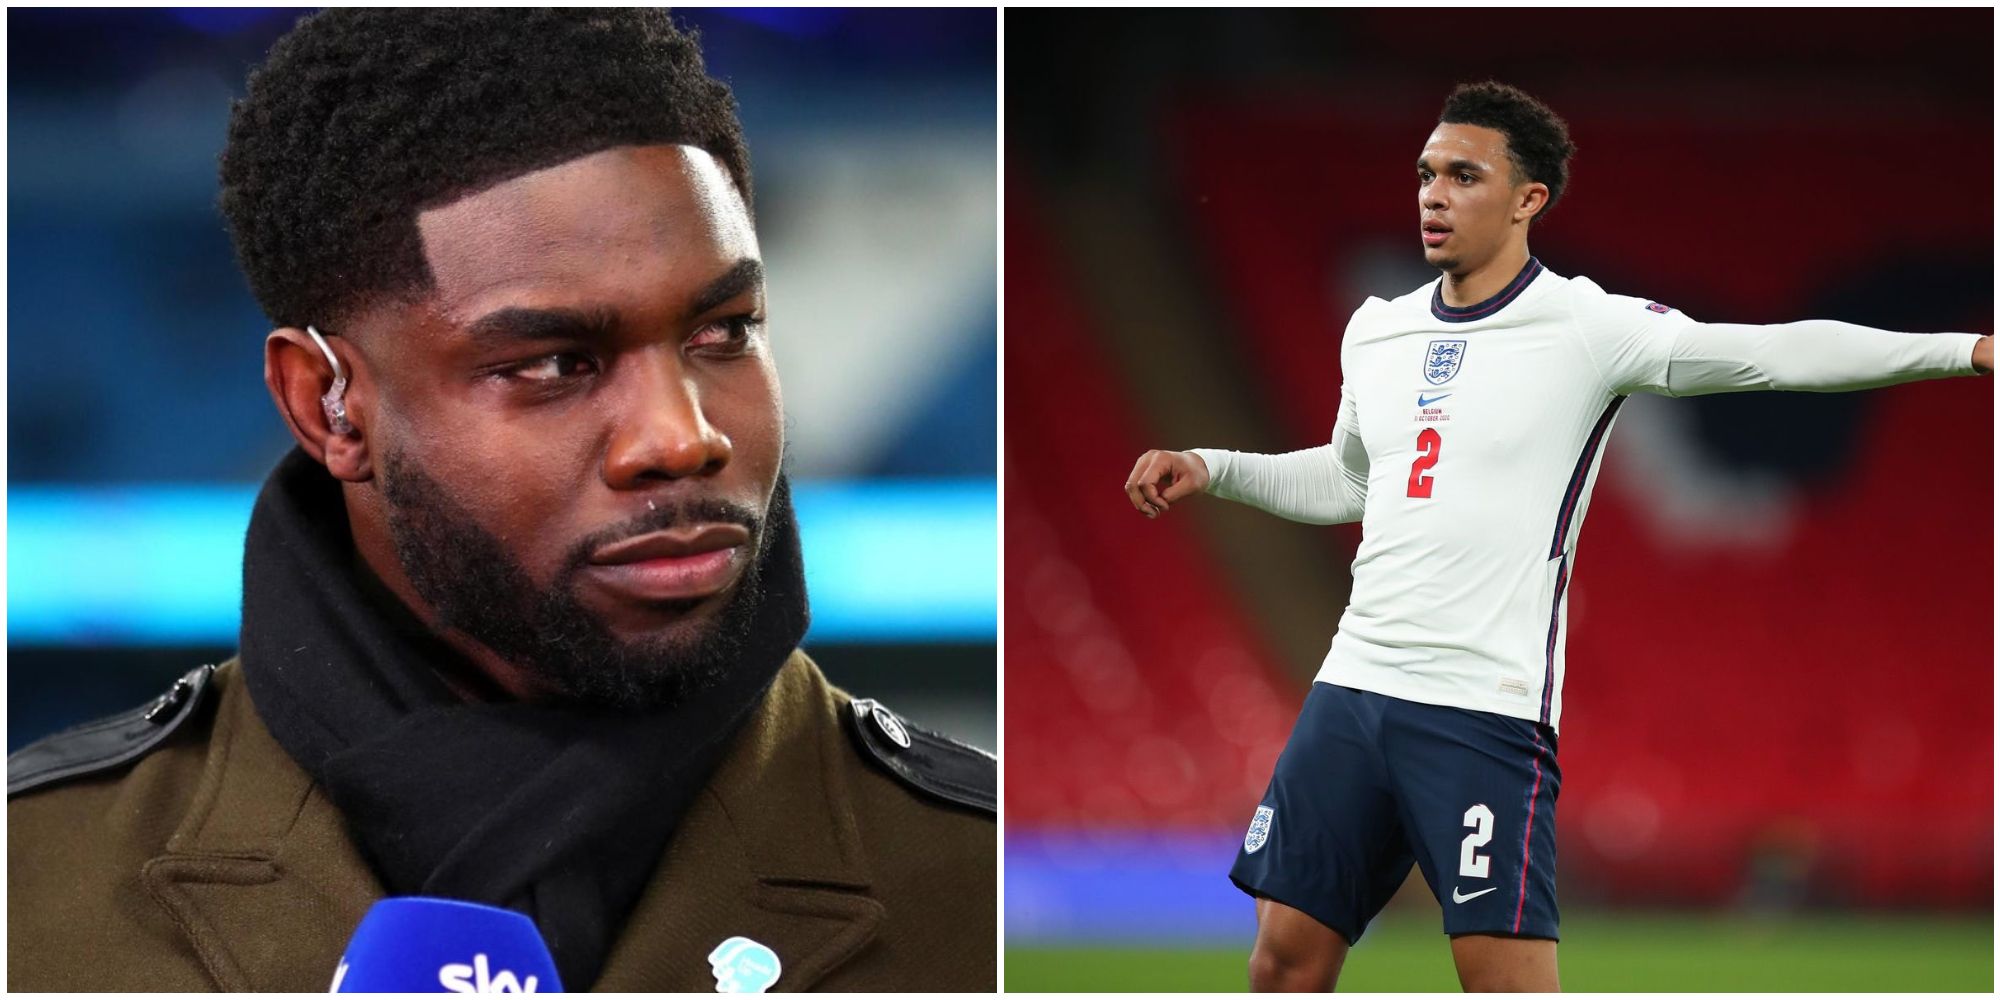 Micah Richards posts incredulous Instagram response to Trent's England snub: 'Still a top player!'